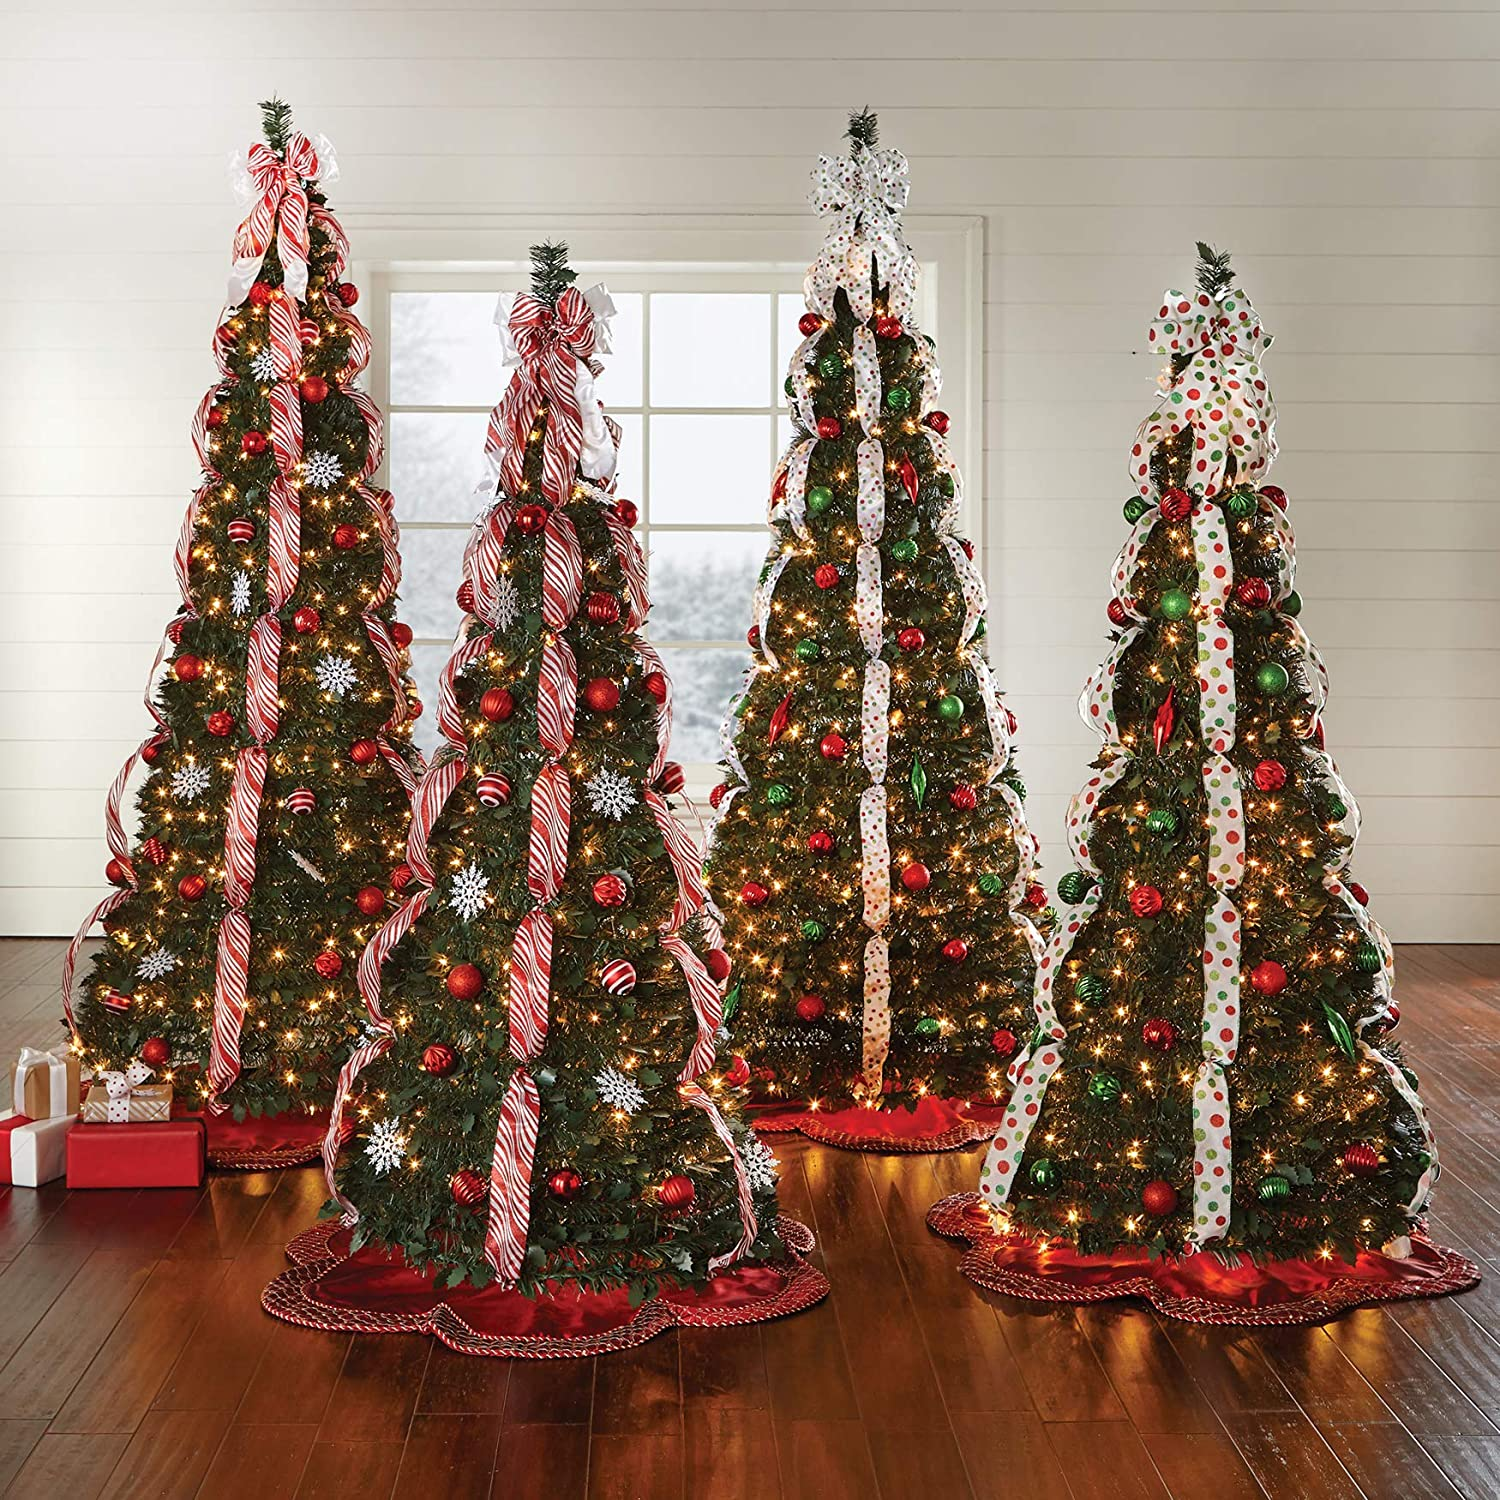 BrylaneHome Christmas Fully Decorated Pre Lit 6 Ft Pop Up Christmas Tree Red White